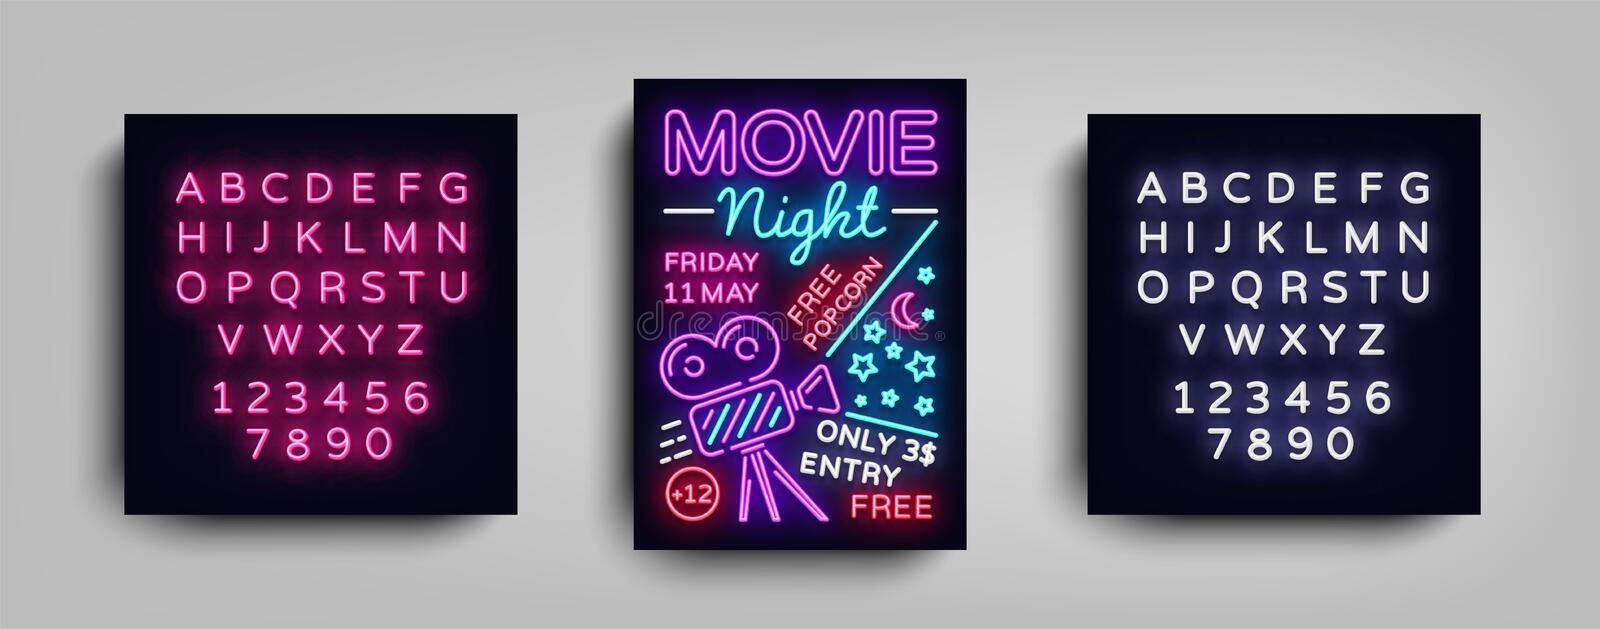 Movie Night poster design template in neon style. Neon Sign, Light Banner, Flyer, Design Postcard, Promotional Brochure vector illustration